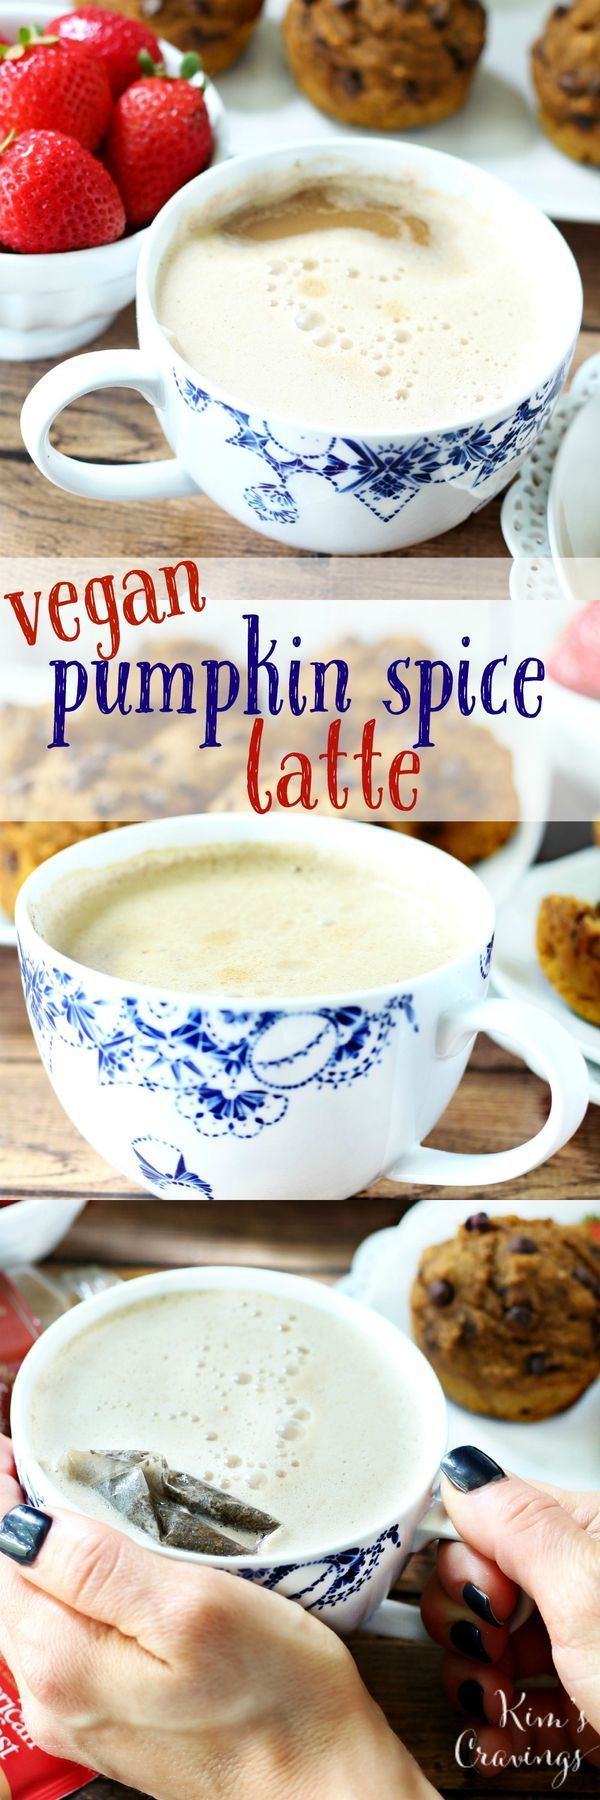 Get in the spirit of the season with this creamy, spicy, and oh-so-pumpkiny Vegan Pumpkin Spice Tea Latte Recipe!